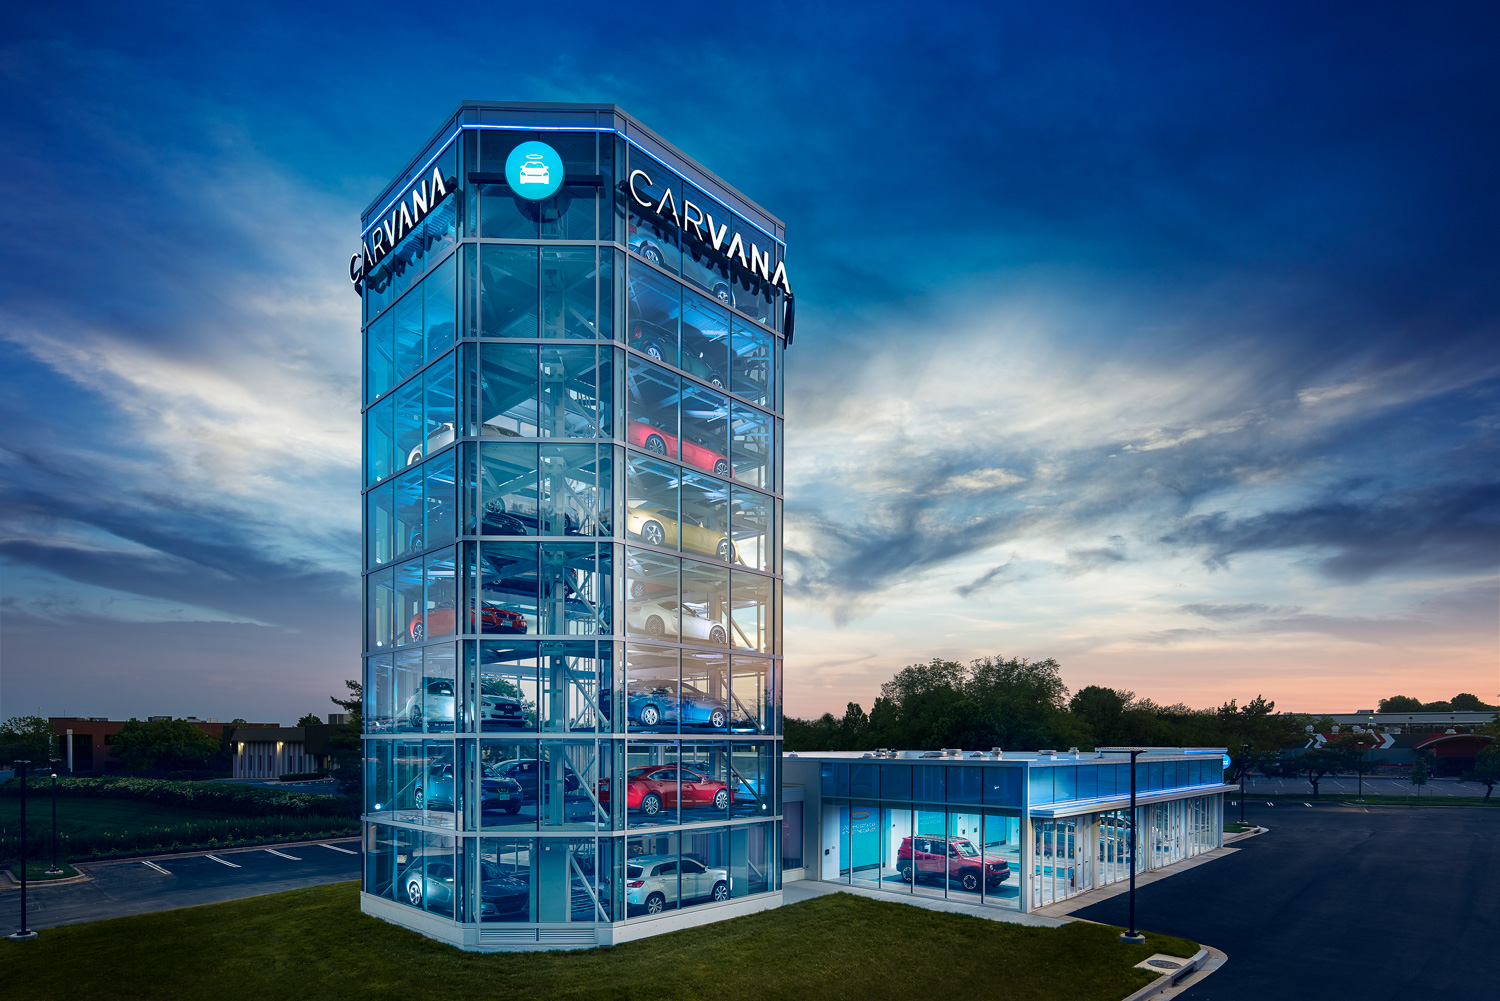 8-story Carvana Car Vending Machine, Washington, DC. © harlan erskine 2018.